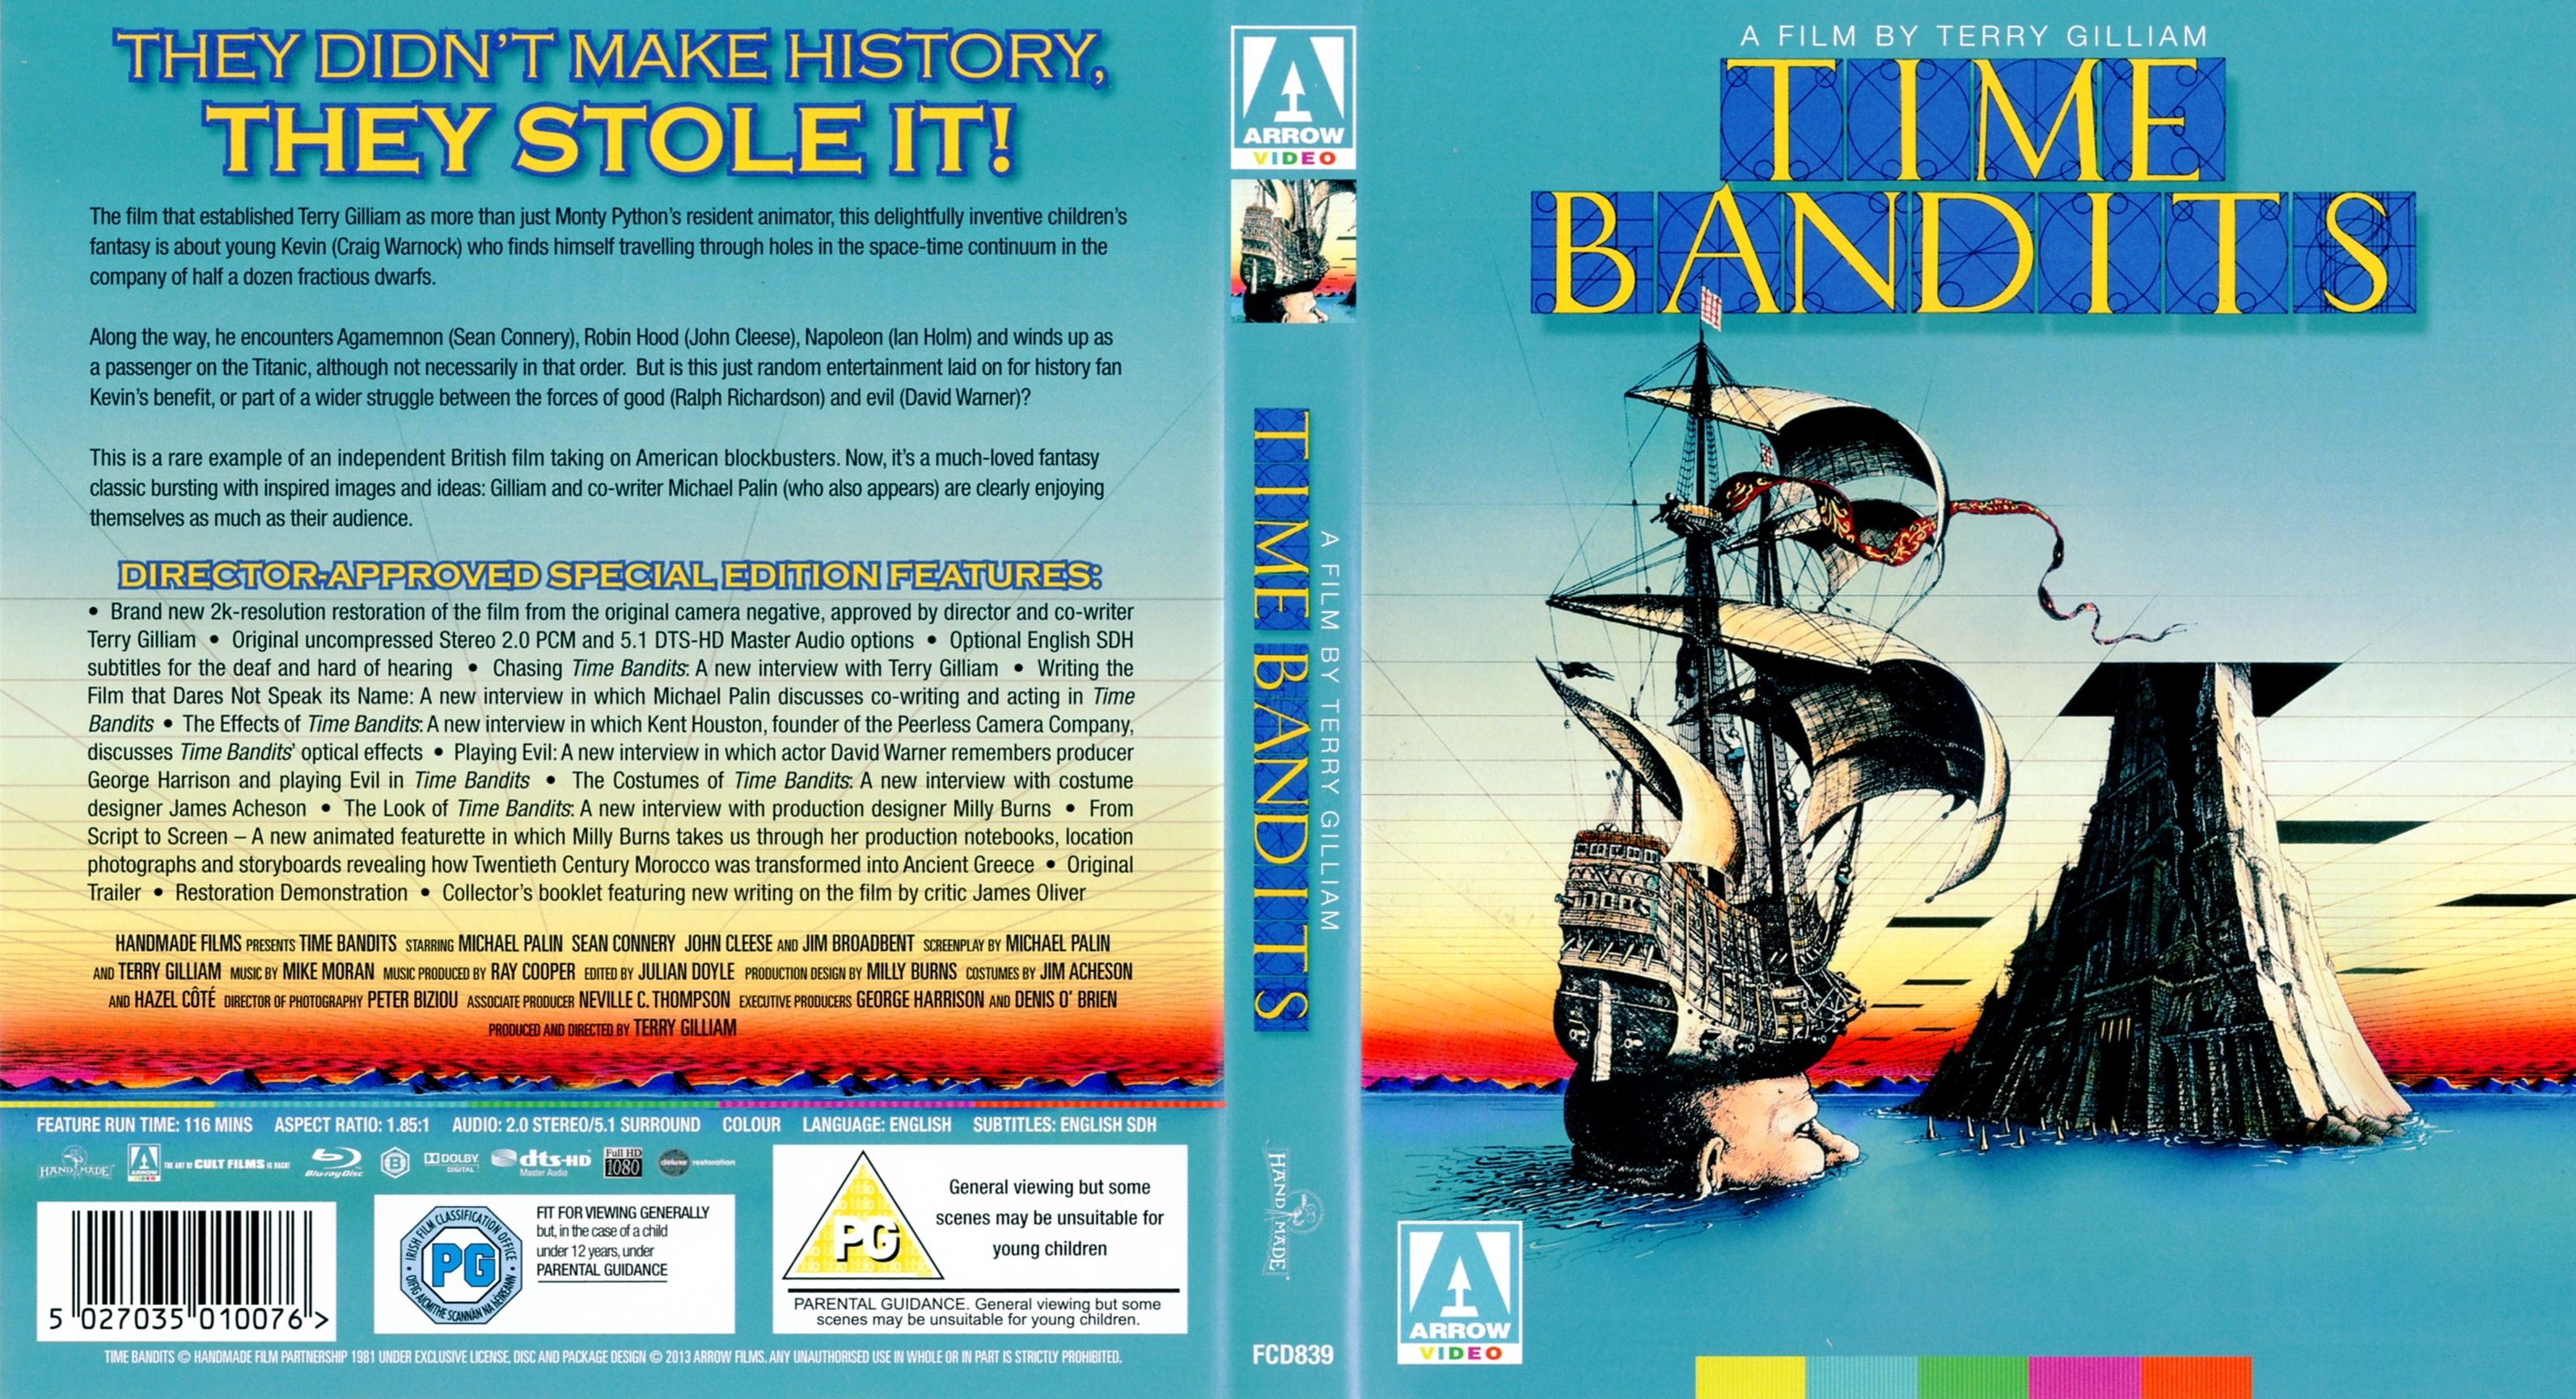 time bandits full movie download